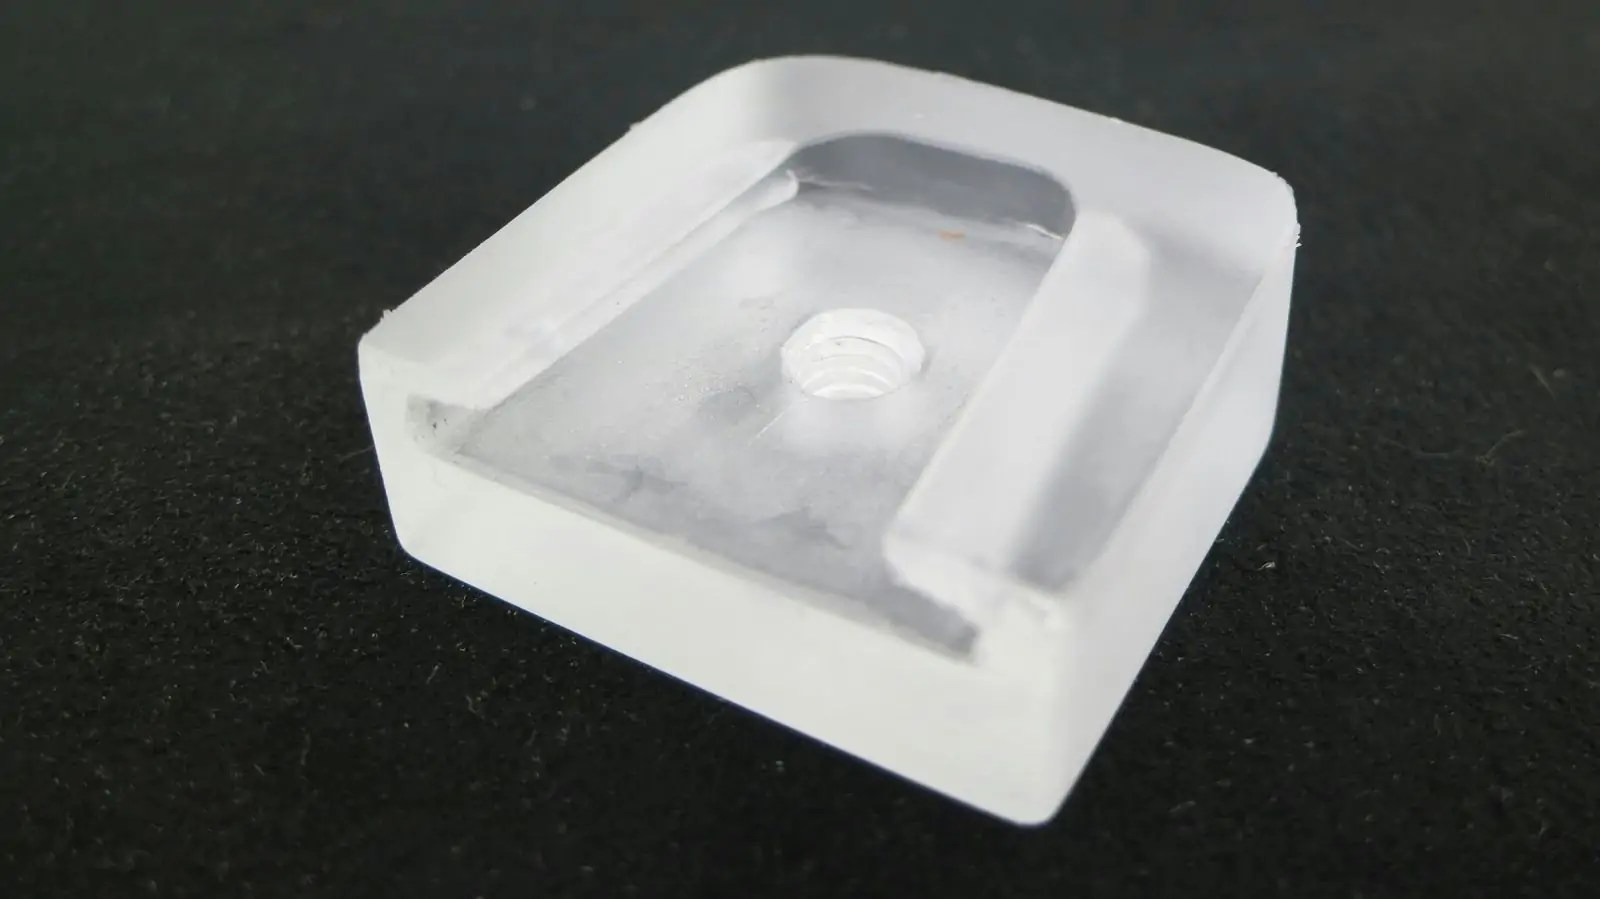 two-part-silicone-mold-making-2-02